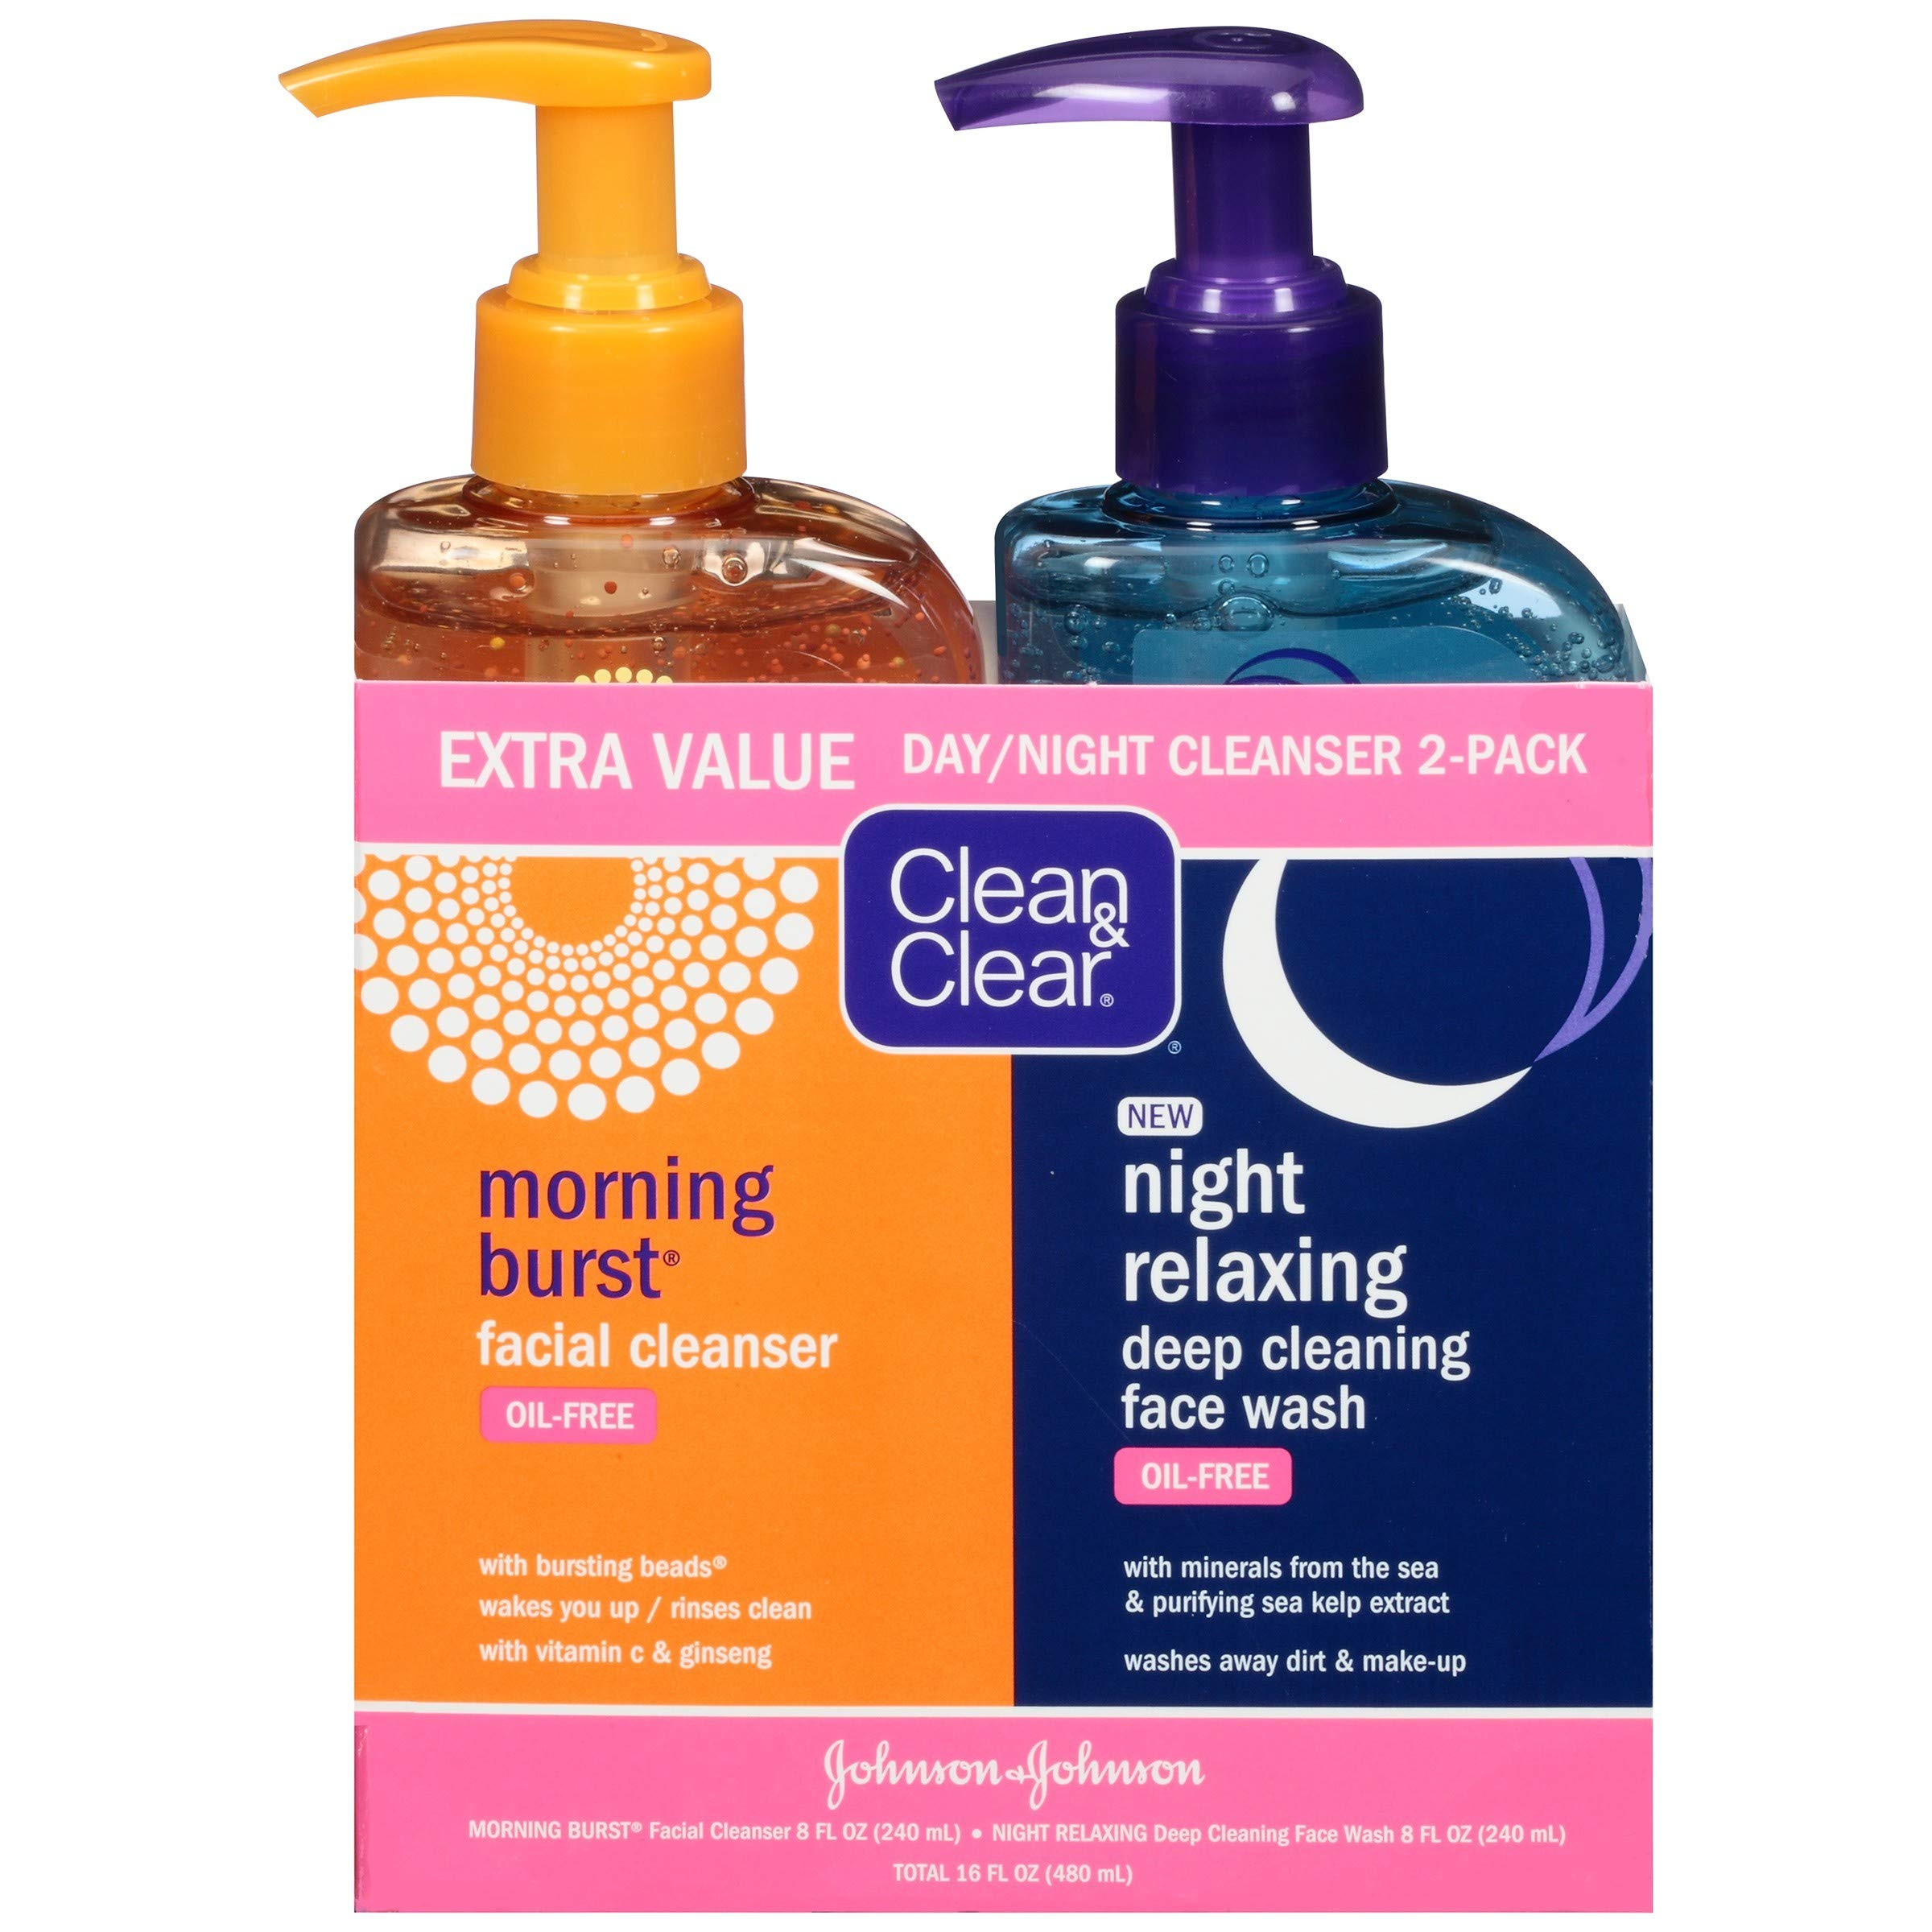 Clean & Clear 2-Pack of Day & Night Face Wash with Citrus Morning Facial Cleanser & Relaxing Night Facial Cleanser, Oil-Free & Hypoallergenic